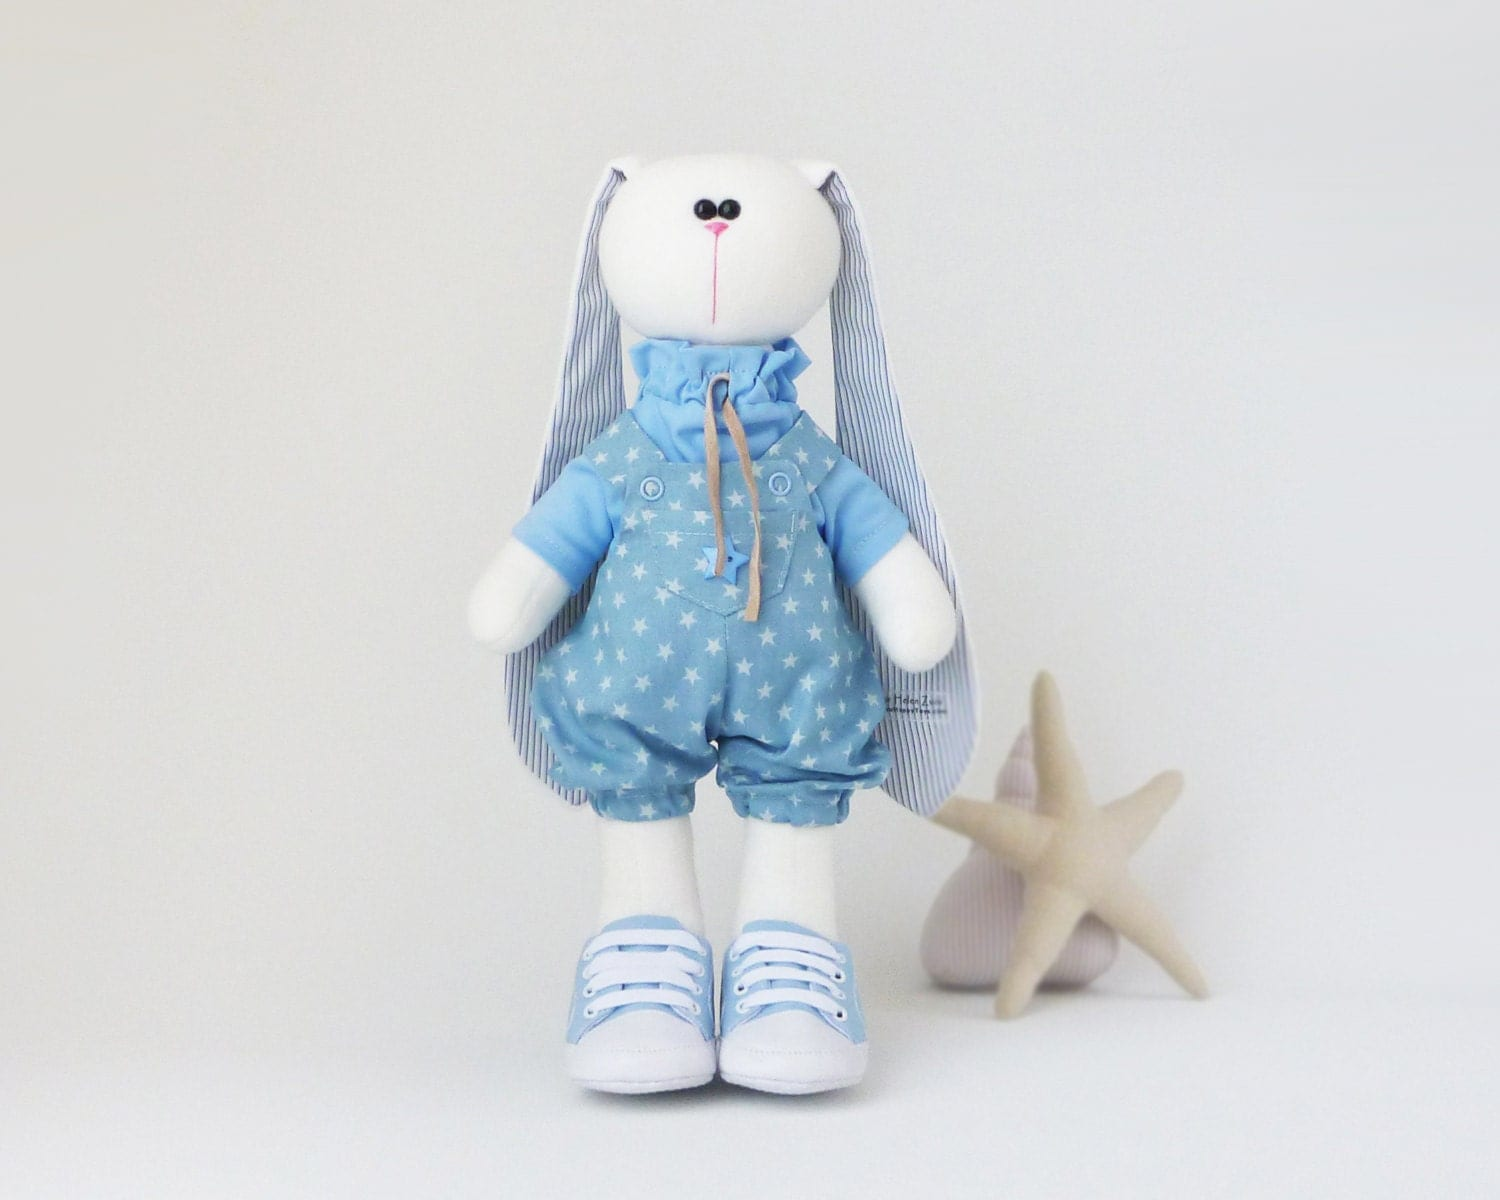 Personalized Toys For Boys : Unique gifts for boys stuffed rabbit toy gift birthday